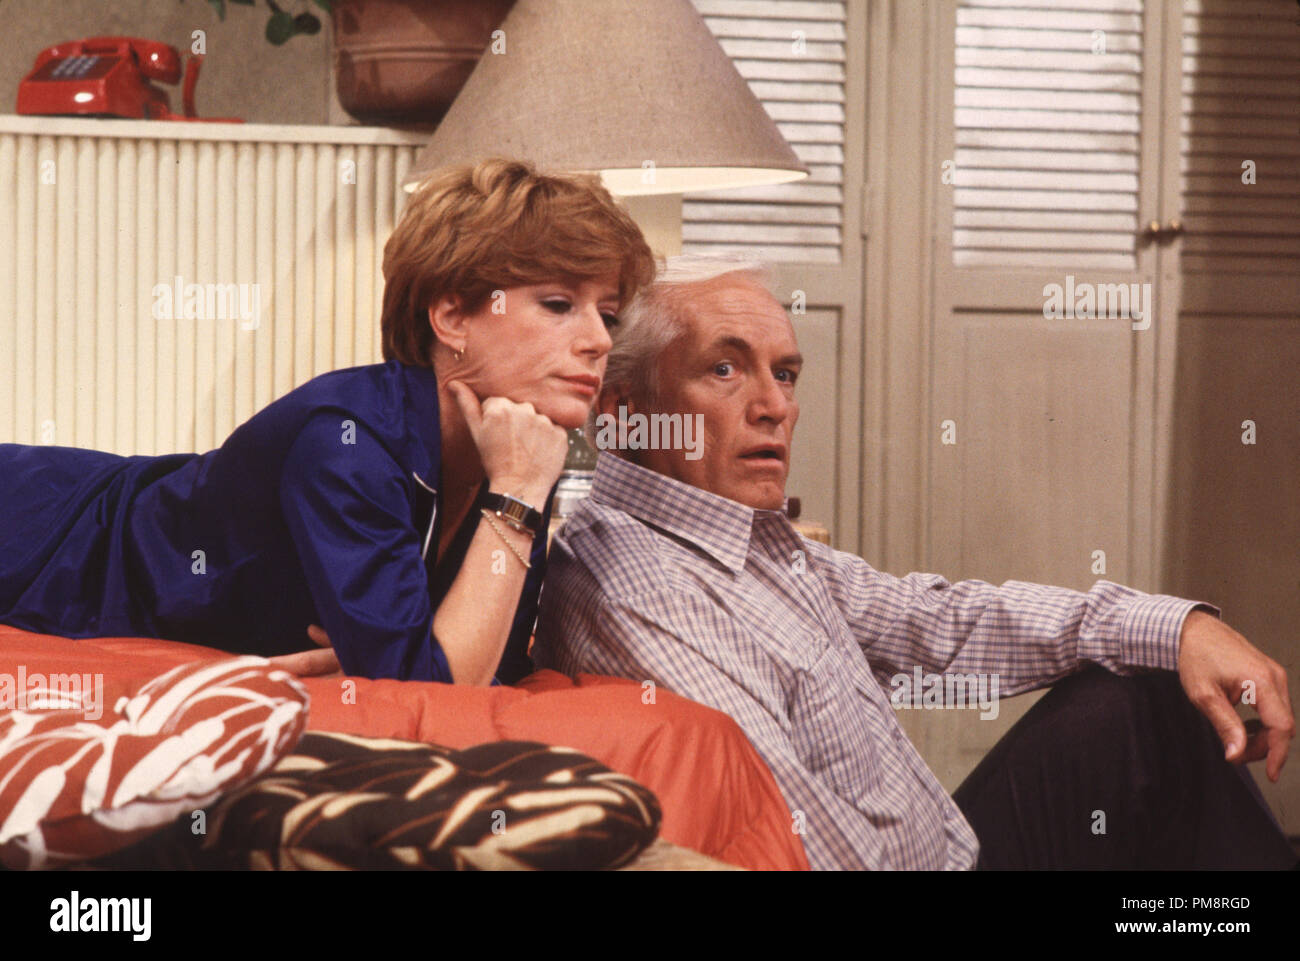 Studio Publicity Still from 'Too Close For Comfort' Ted Knight,Nancy Dussault 1980  All Rights Reserved   File Reference # 31715022THA  For Editorial Use Only - Stock Image